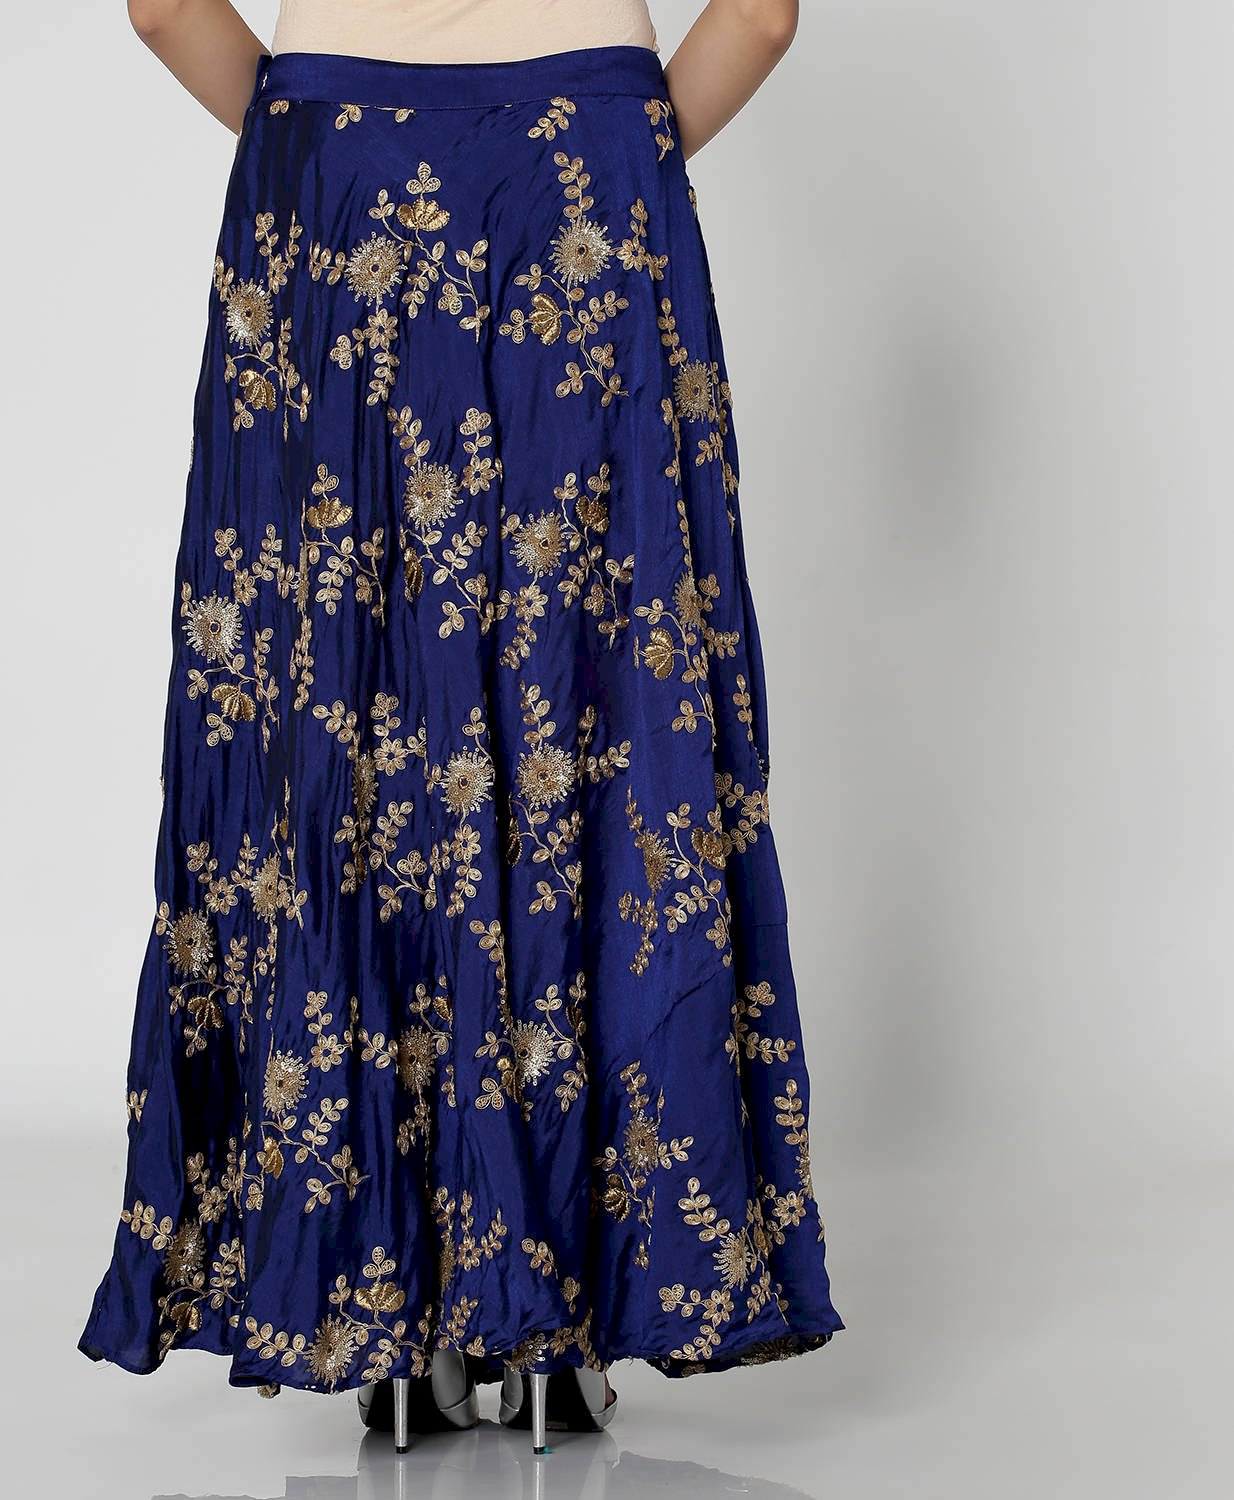 Blue Embroidered Kalidar Festive Skirt